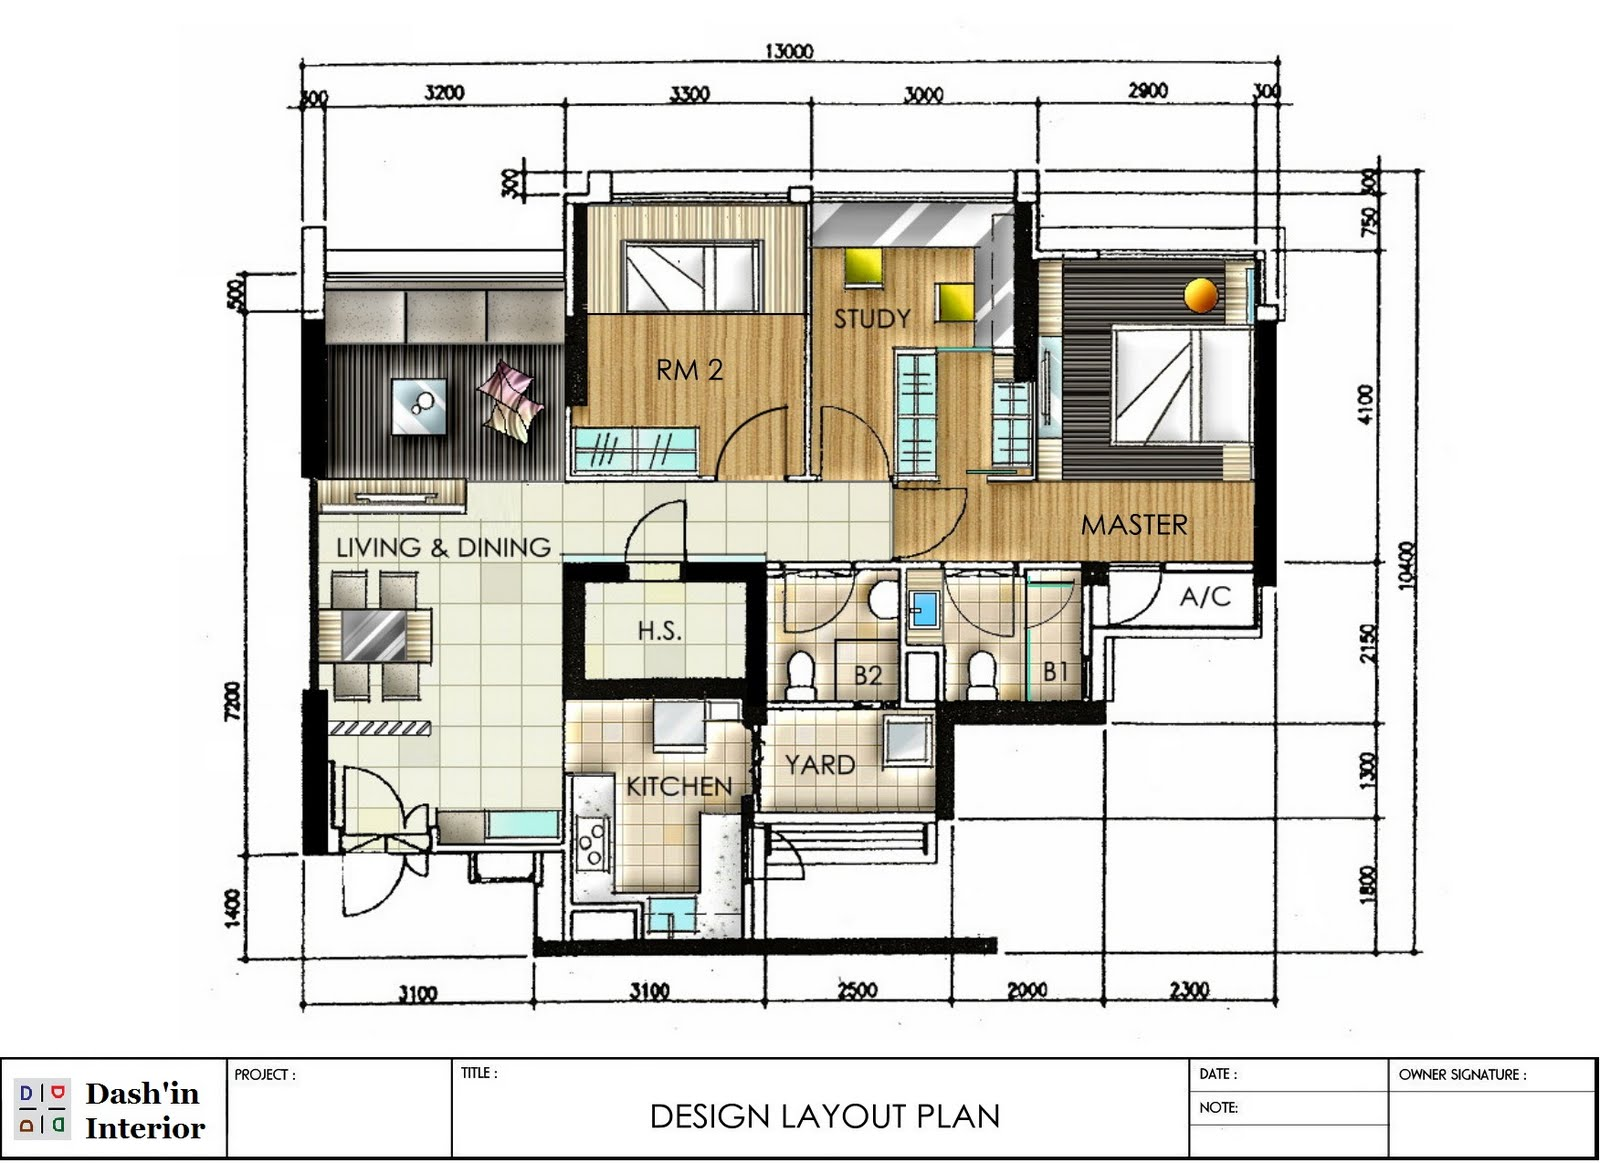 Dash 39 in interior hand drawn designs floor plan layout for Interior design plan drawings